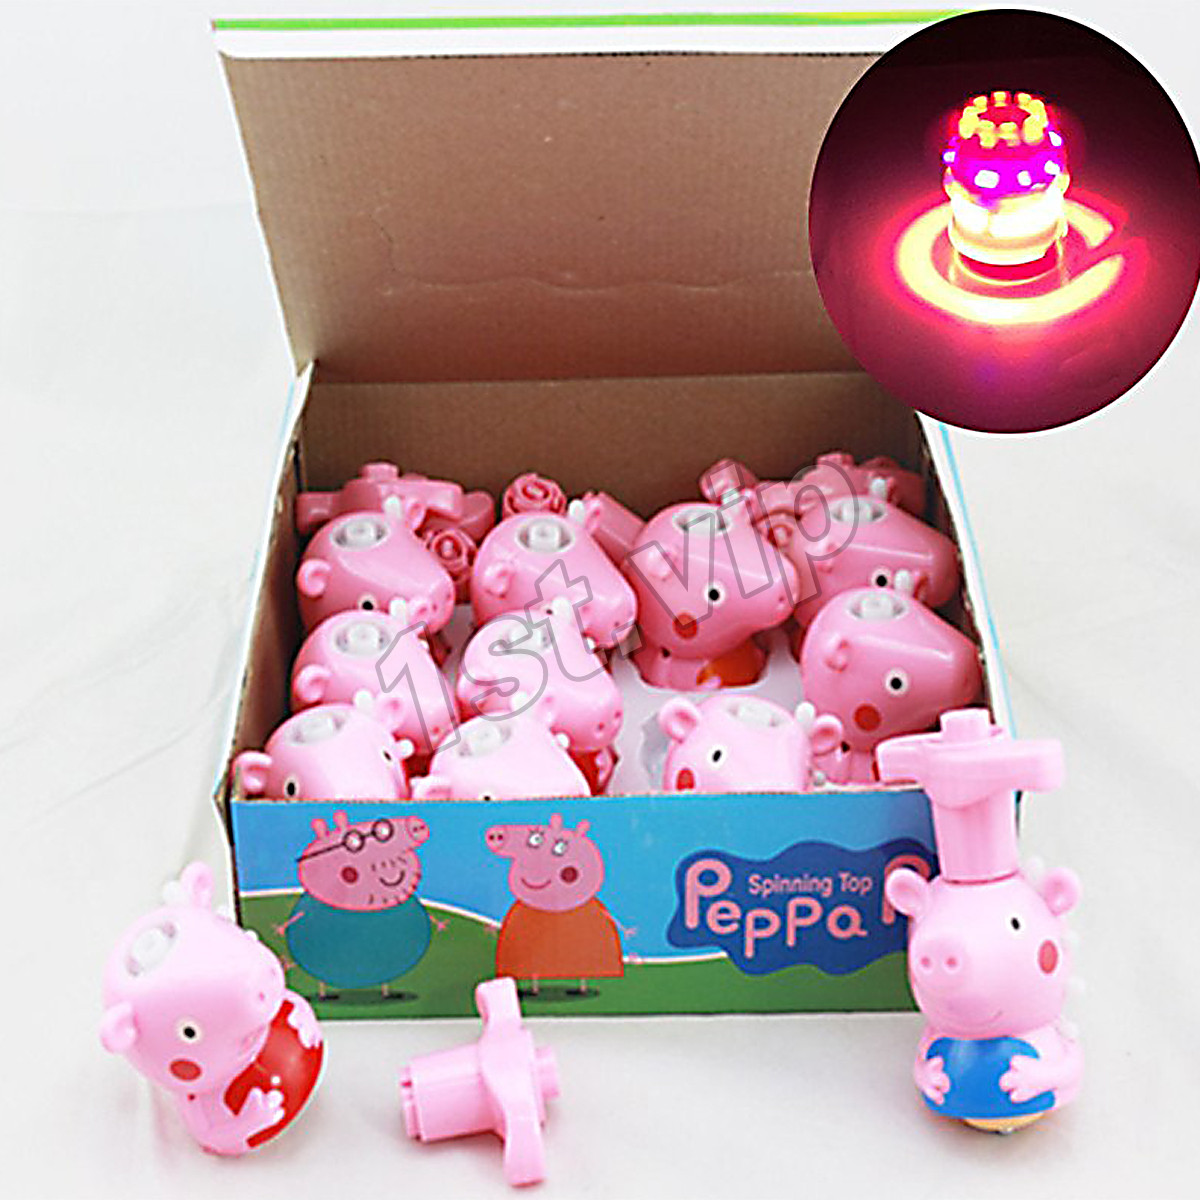 Best Peppa Pig Toys : Peppa pig figures led light music spinning gyro peg